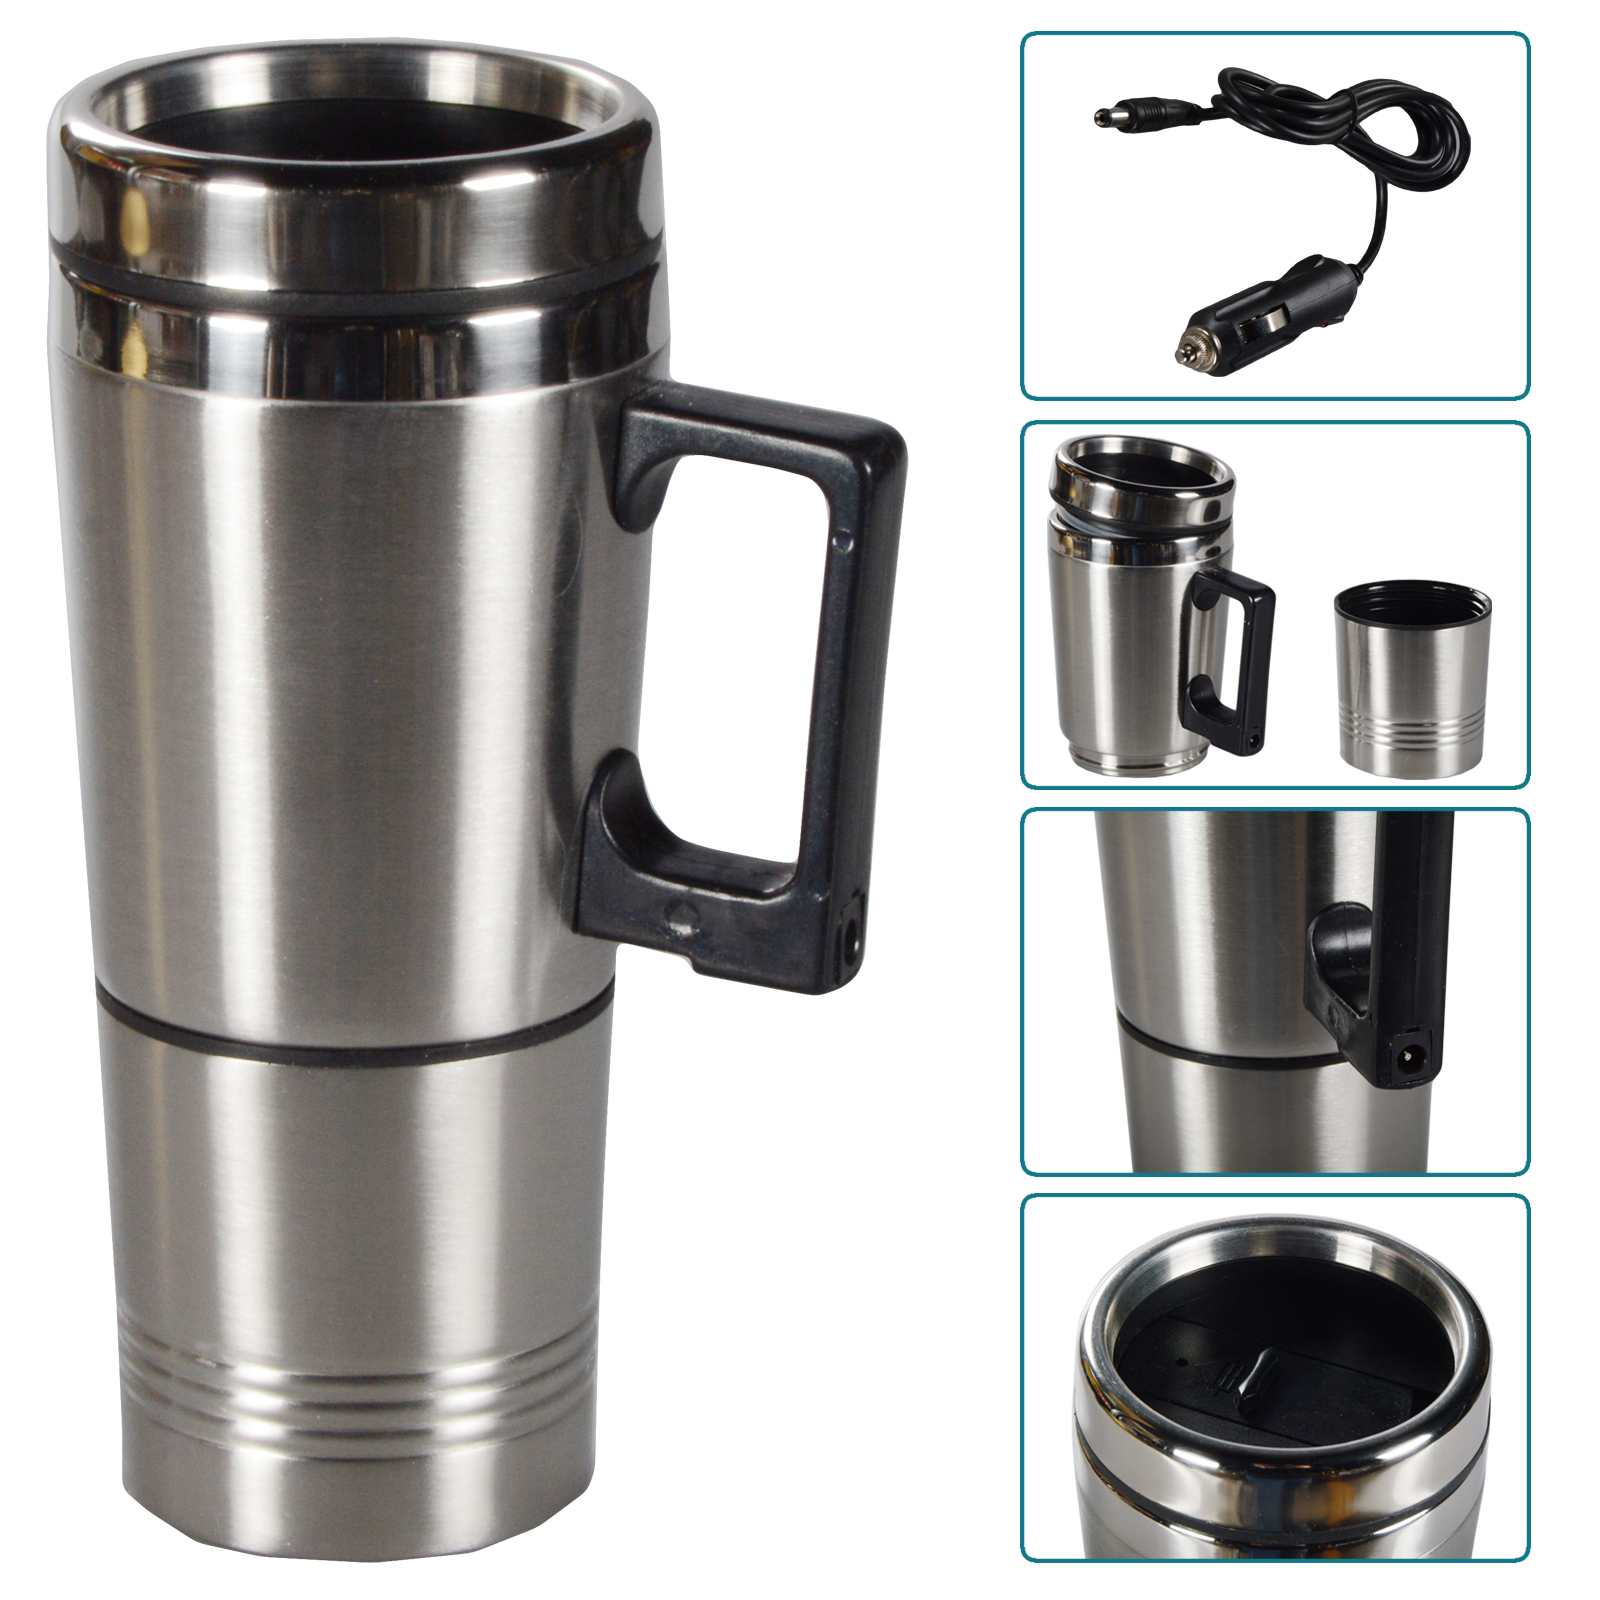 heatable drinking cup coffee mug car cup stainless steel insulated mug 12v ebay. Black Bedroom Furniture Sets. Home Design Ideas